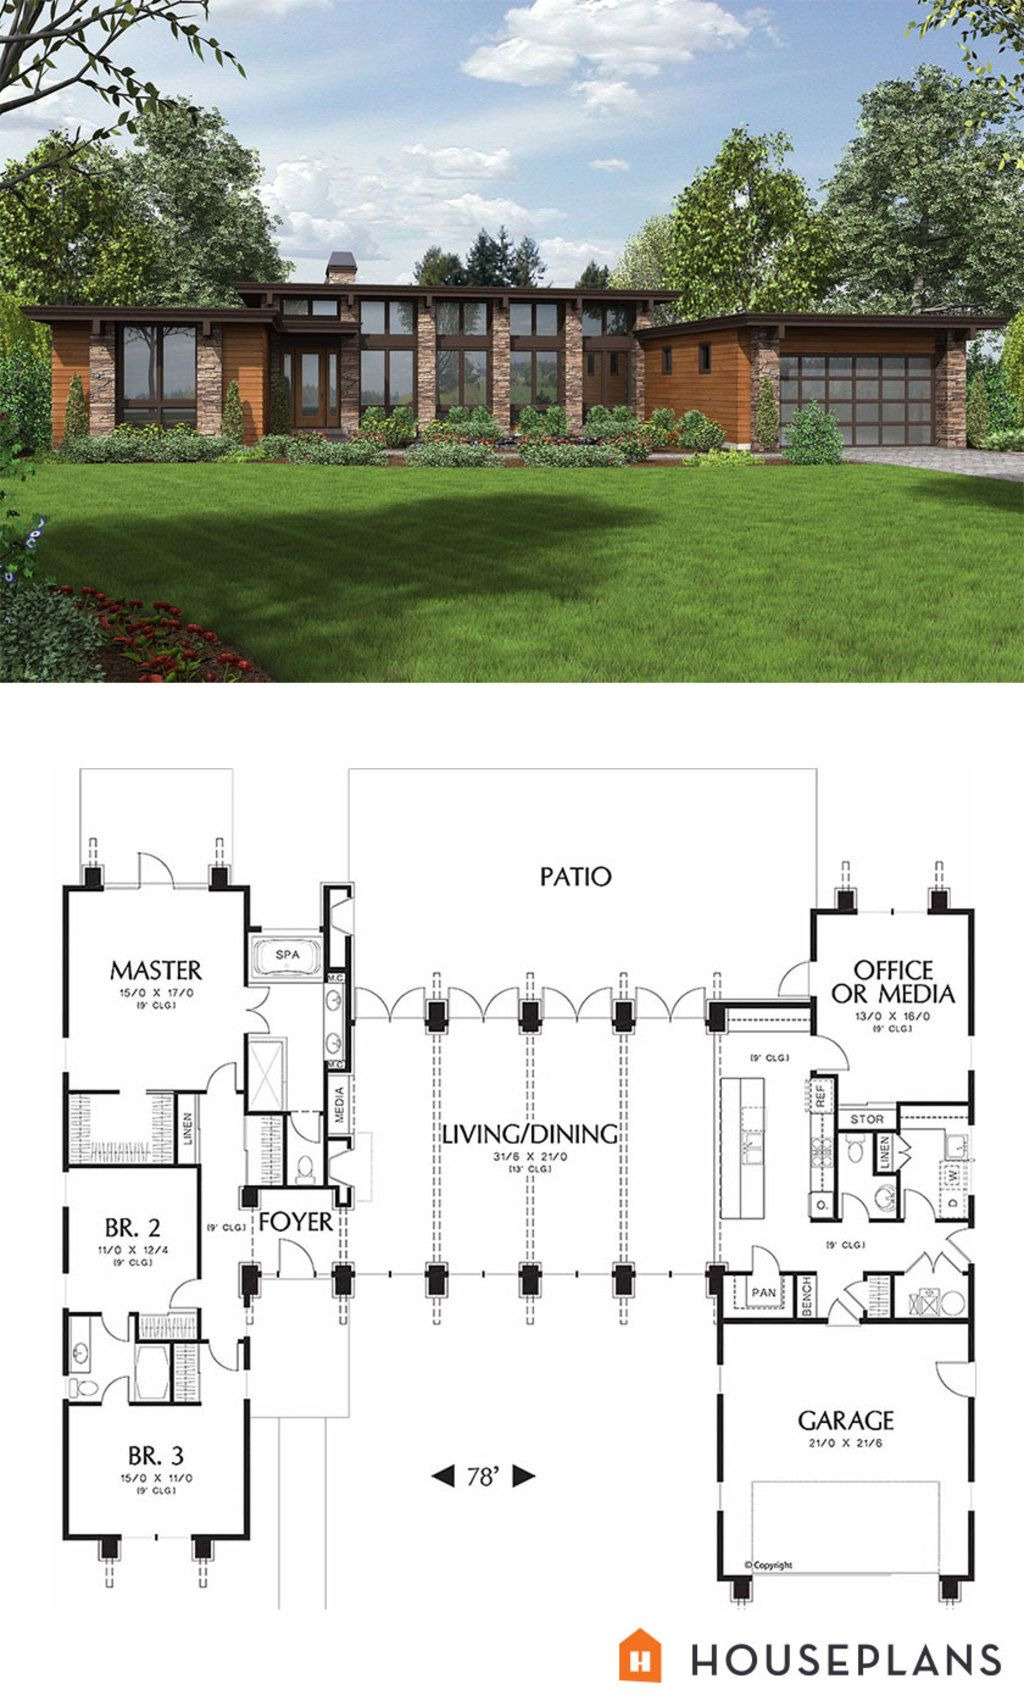 Contemporary House Plans for Sale Lovely Modern Style House Plan 3 Beds 2 5 Baths 2557 Sq Ft Plan